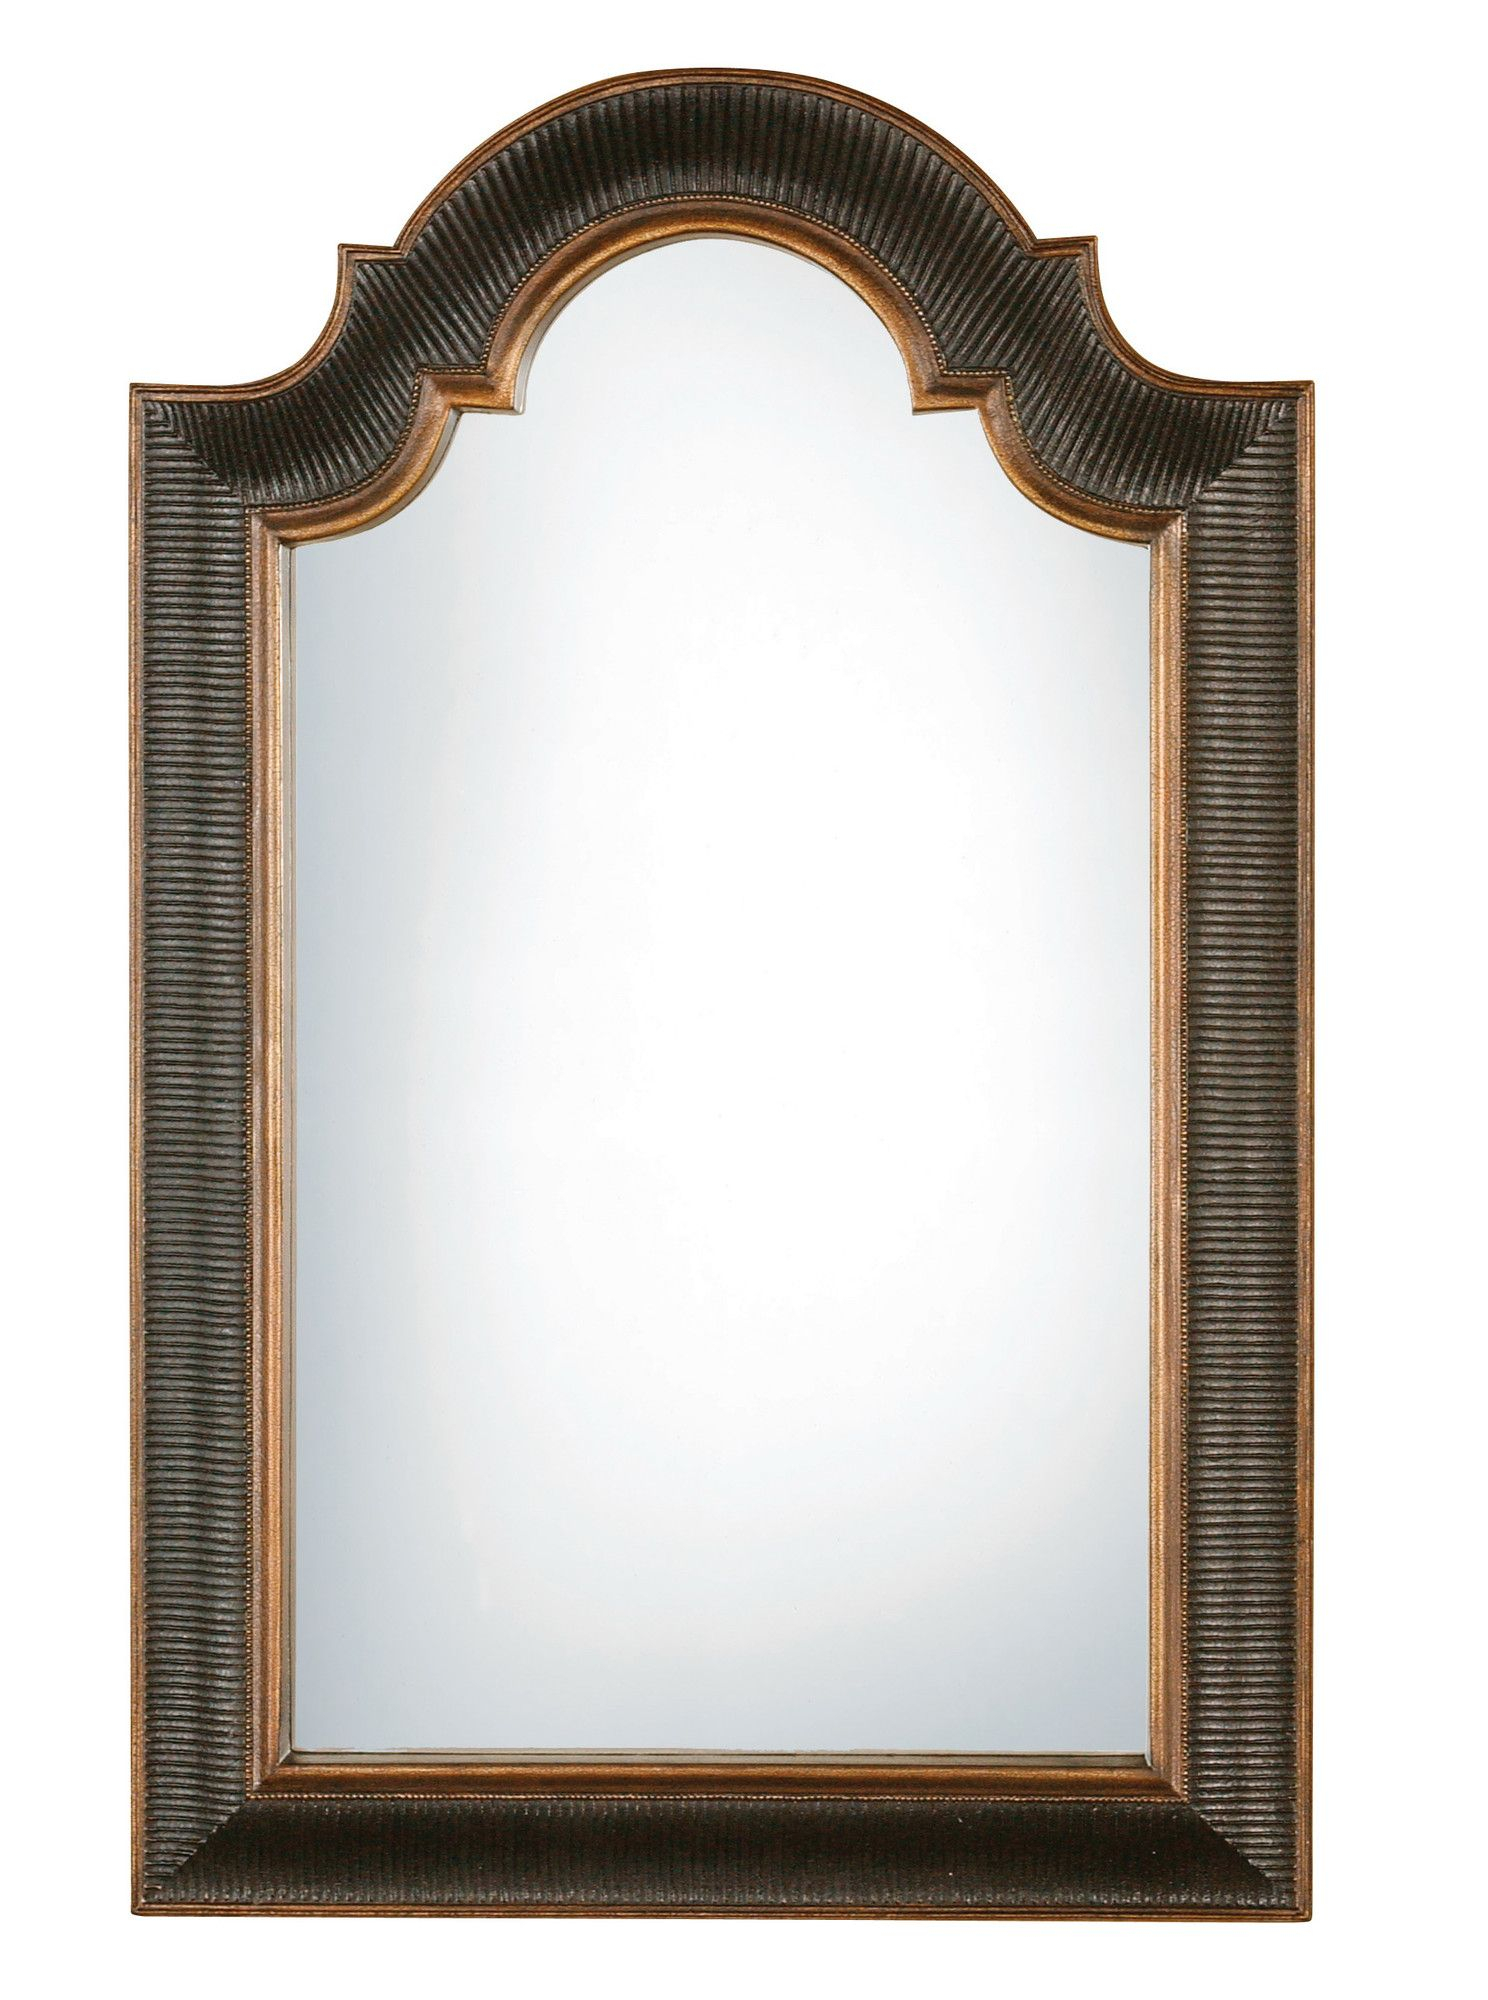 Hoffman Ribbed Wall Mirror | Mirrors For Bathroom | Home With Regard To Arch Vertical Wall Mirrors (Image 13 of 20)